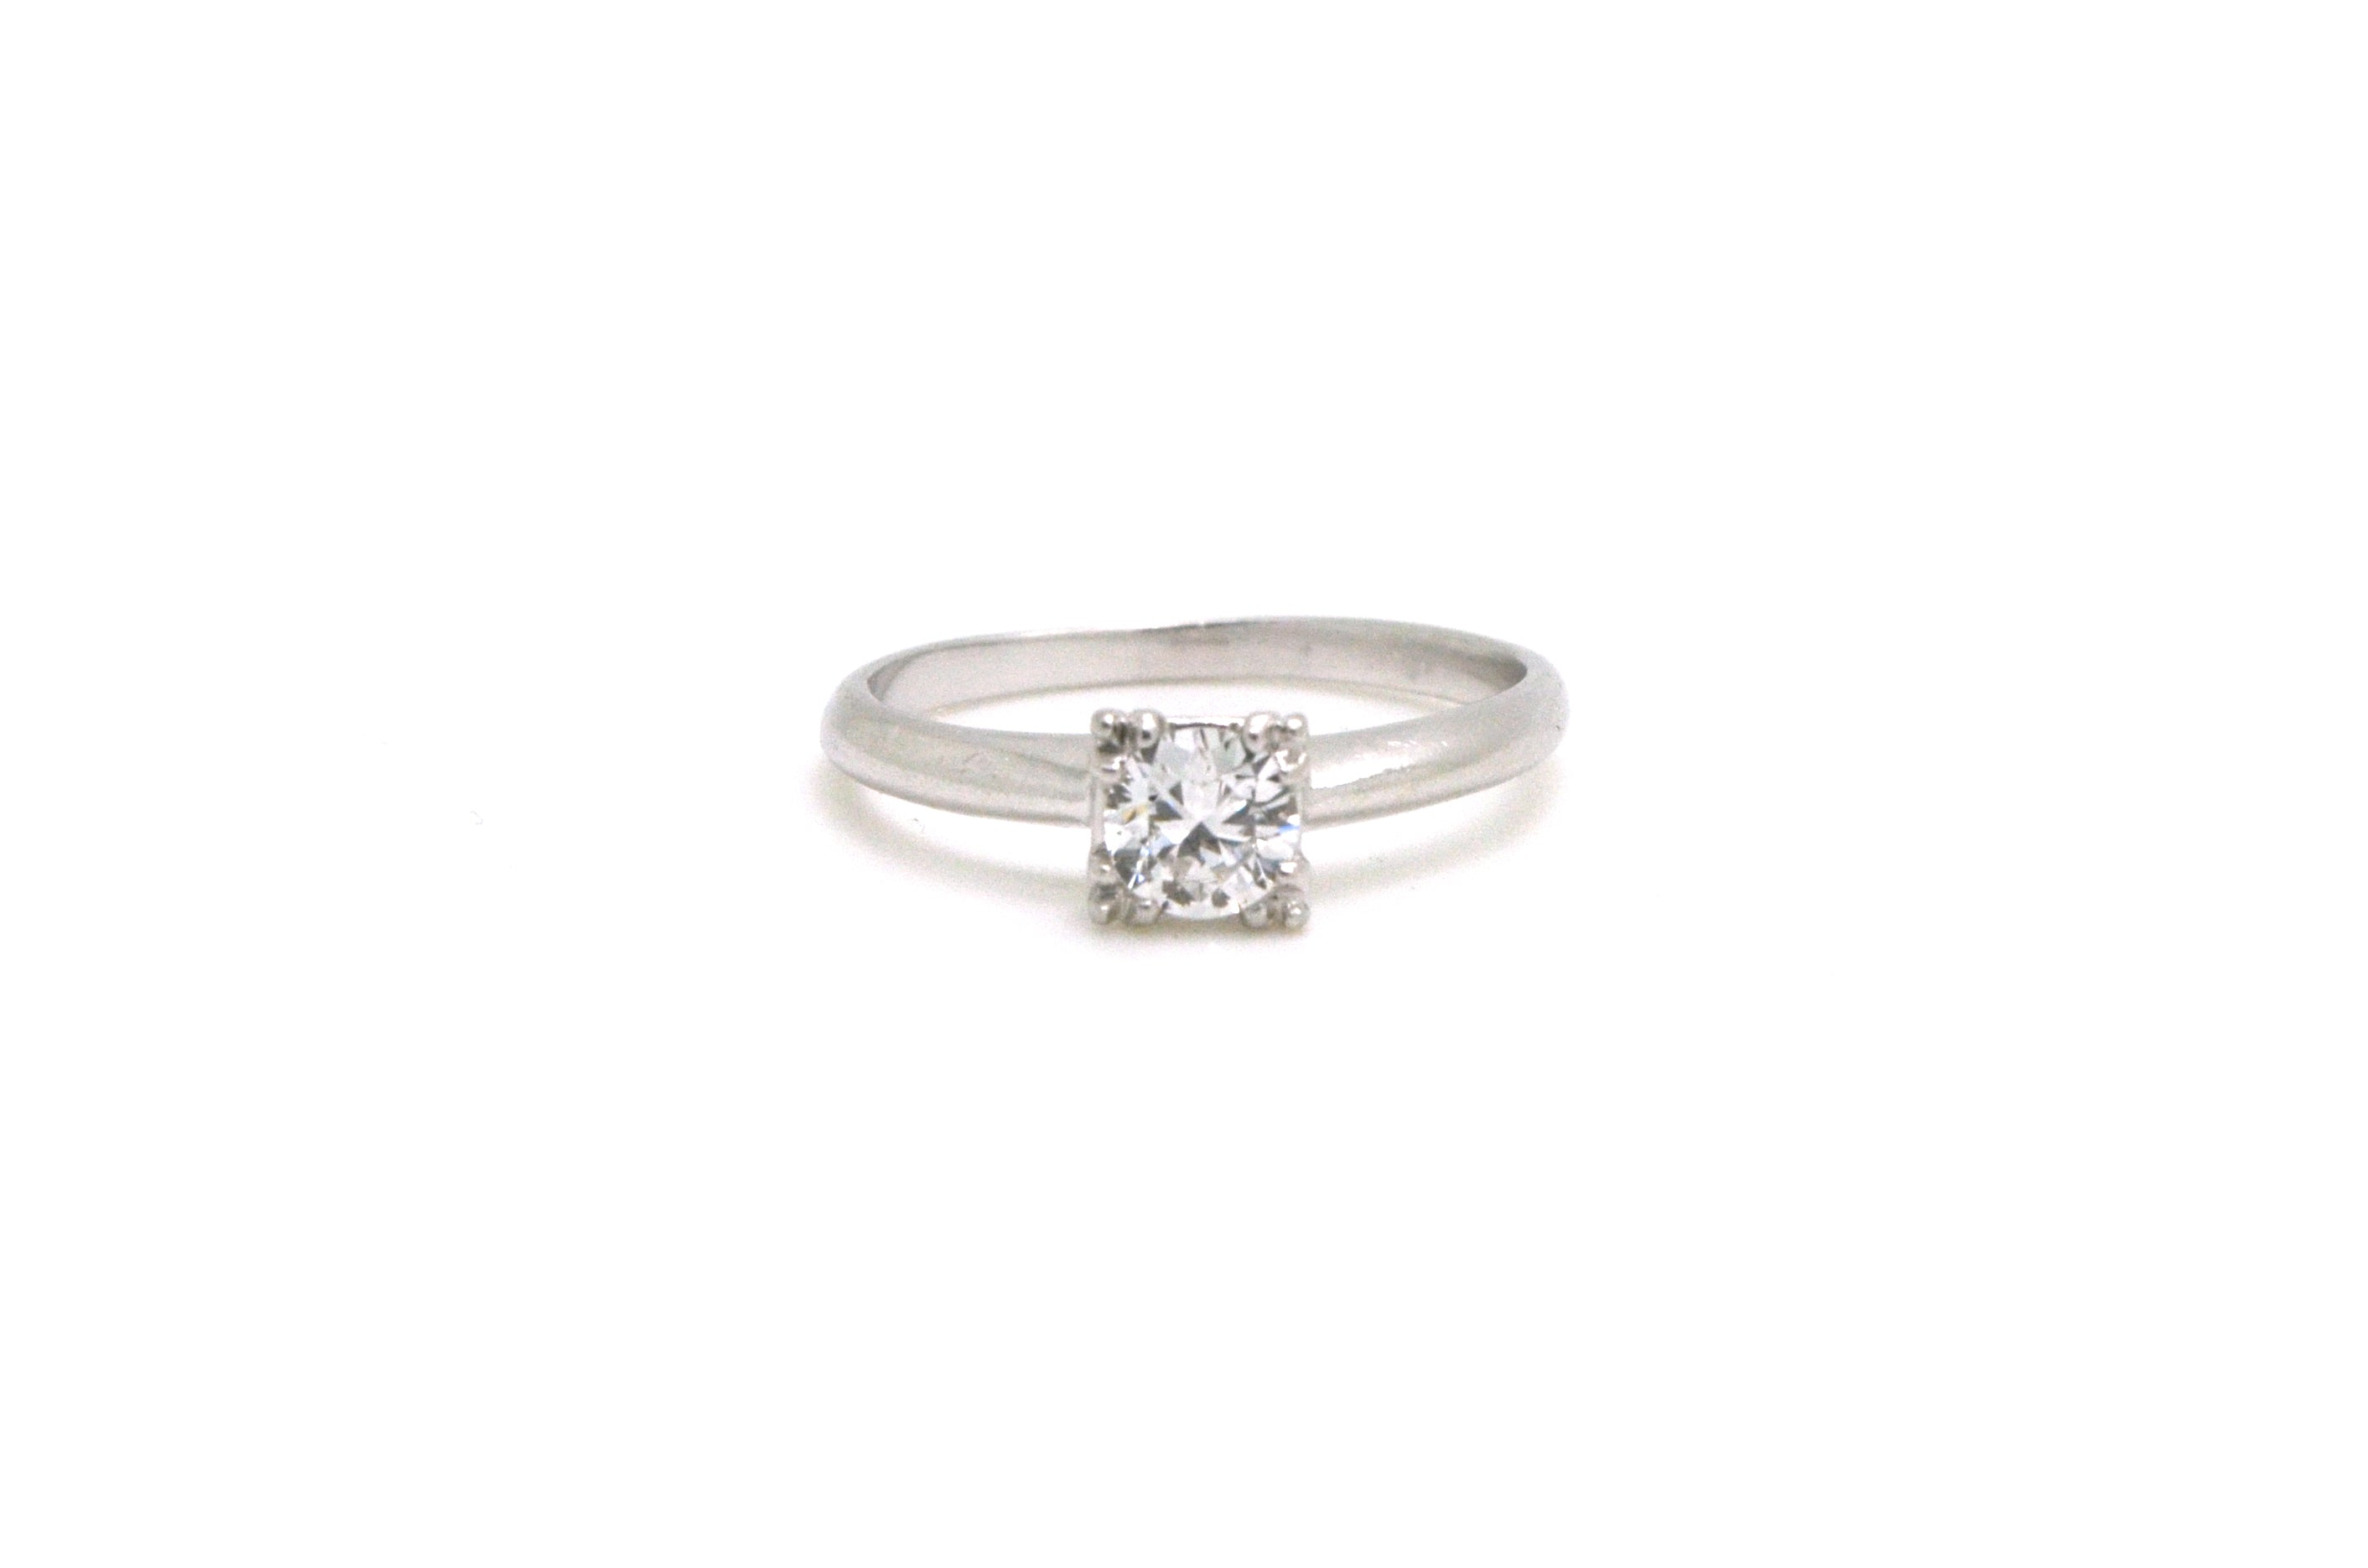 ring two antique french circa side platinum engagement rings at j id jewelry diamond org